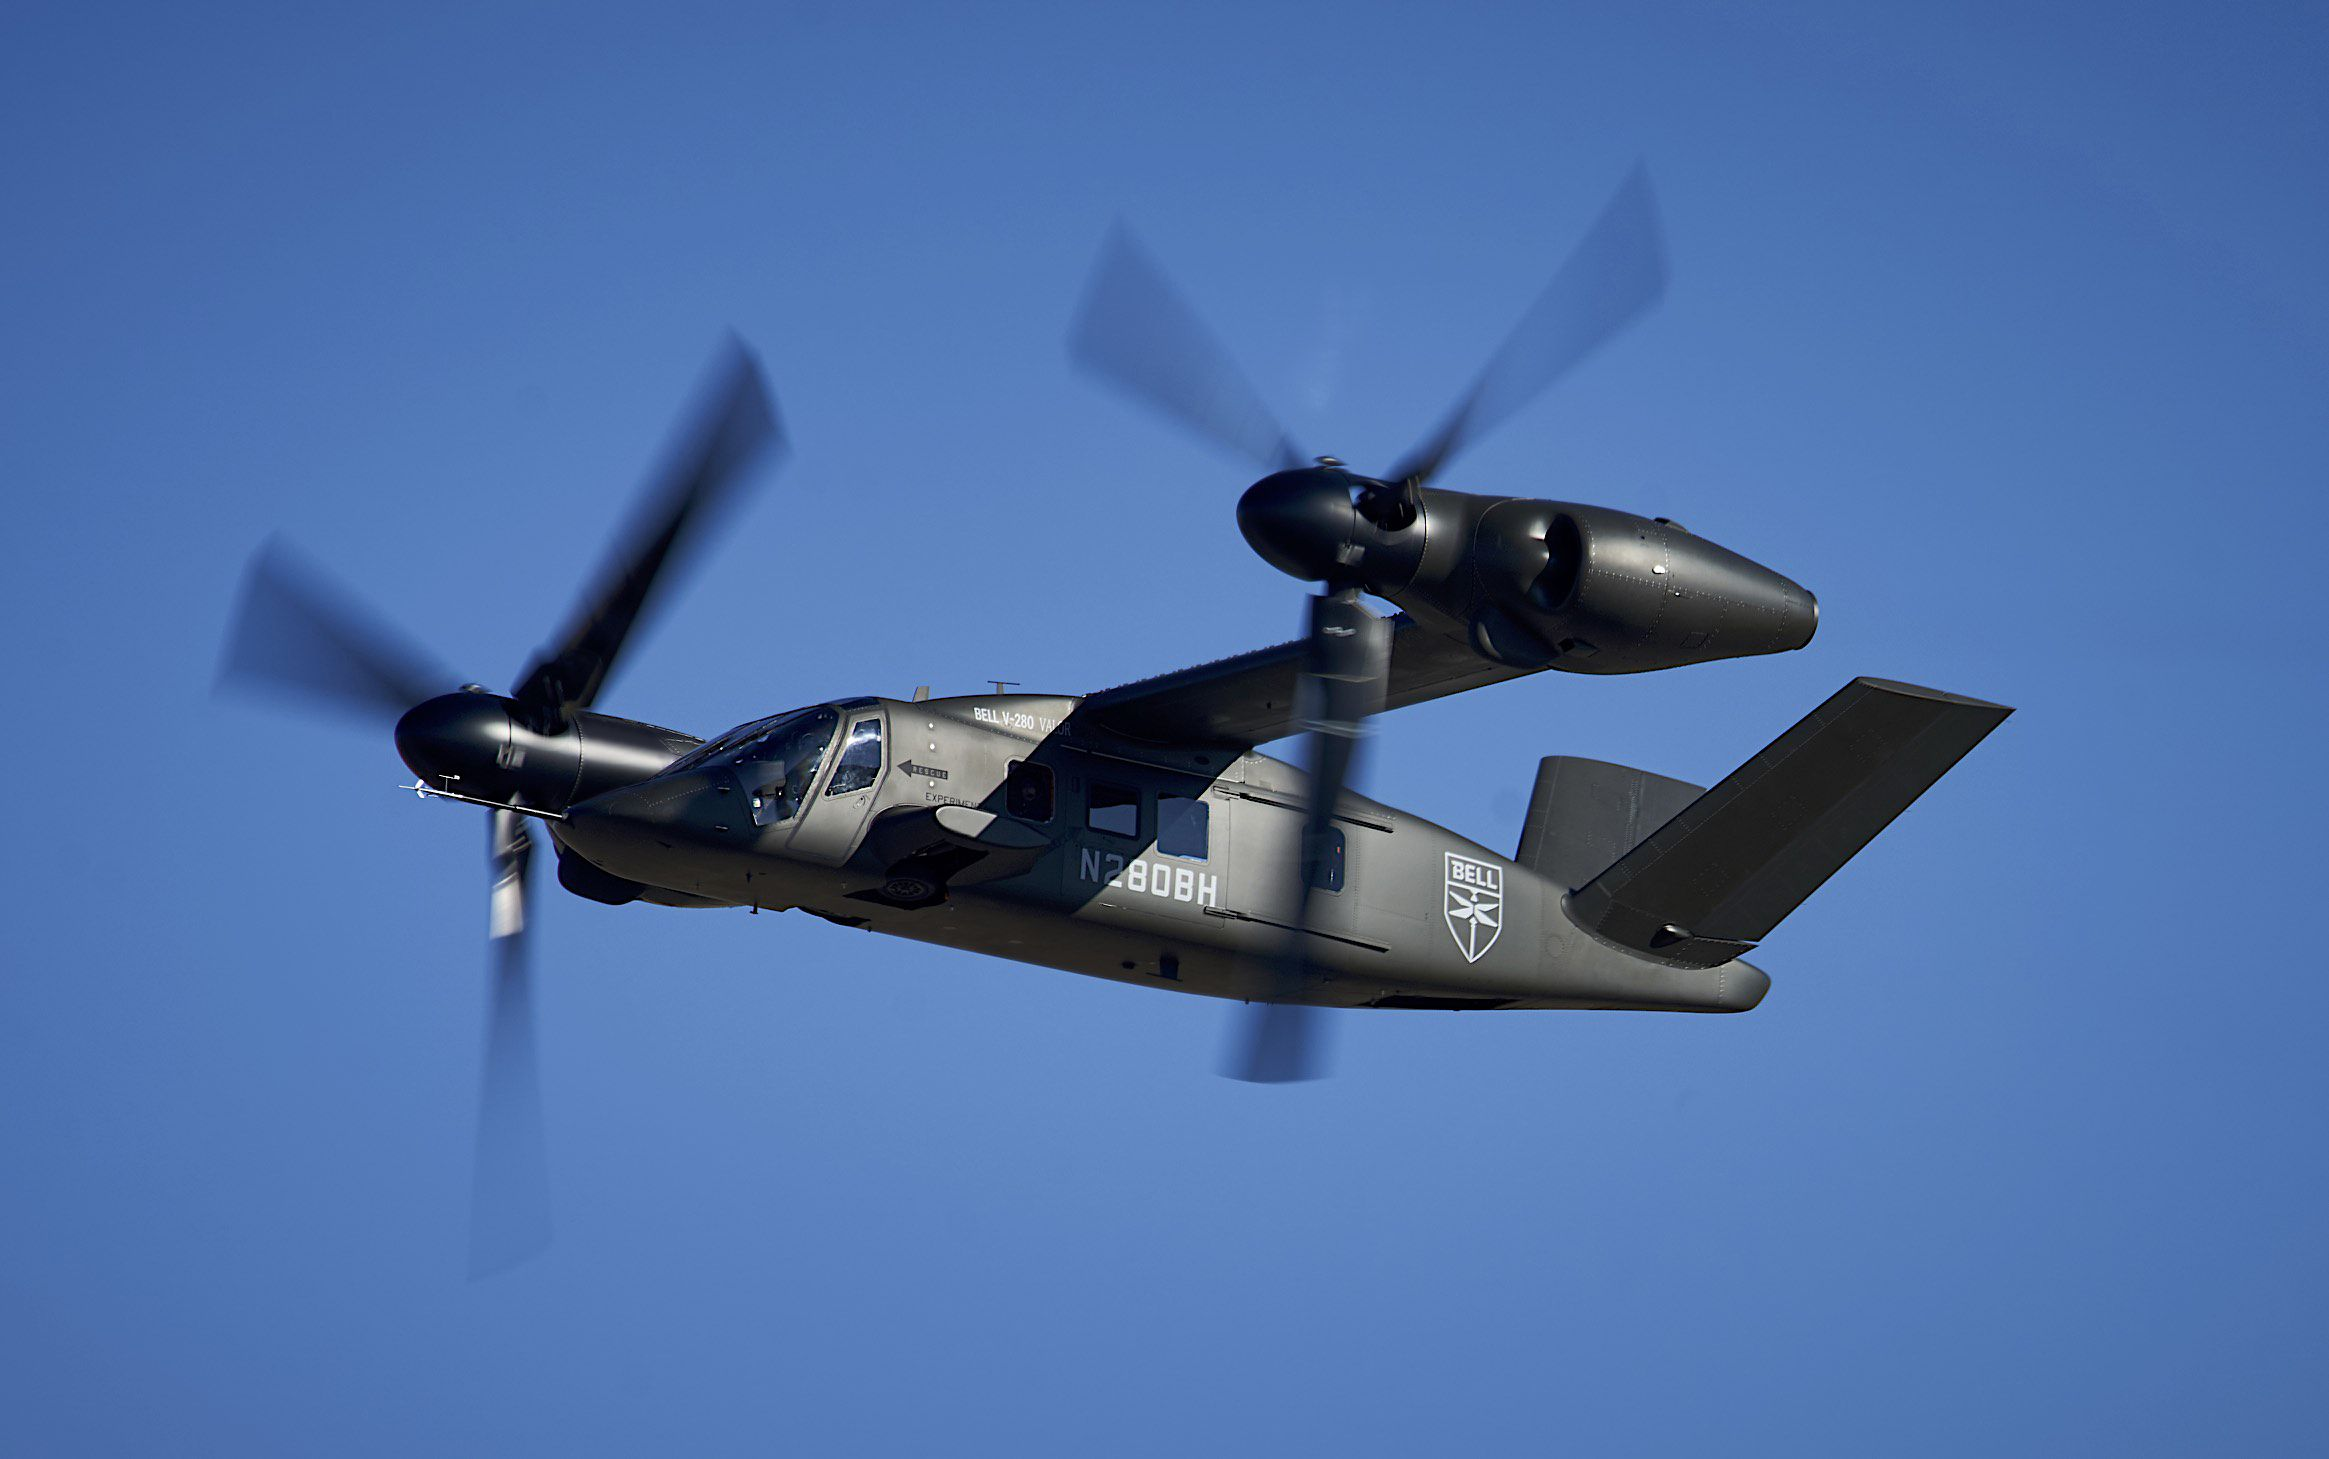 Thanks to F-35 Tech, V-280 Tiltrotor Pilots Will Soon See in All Directions